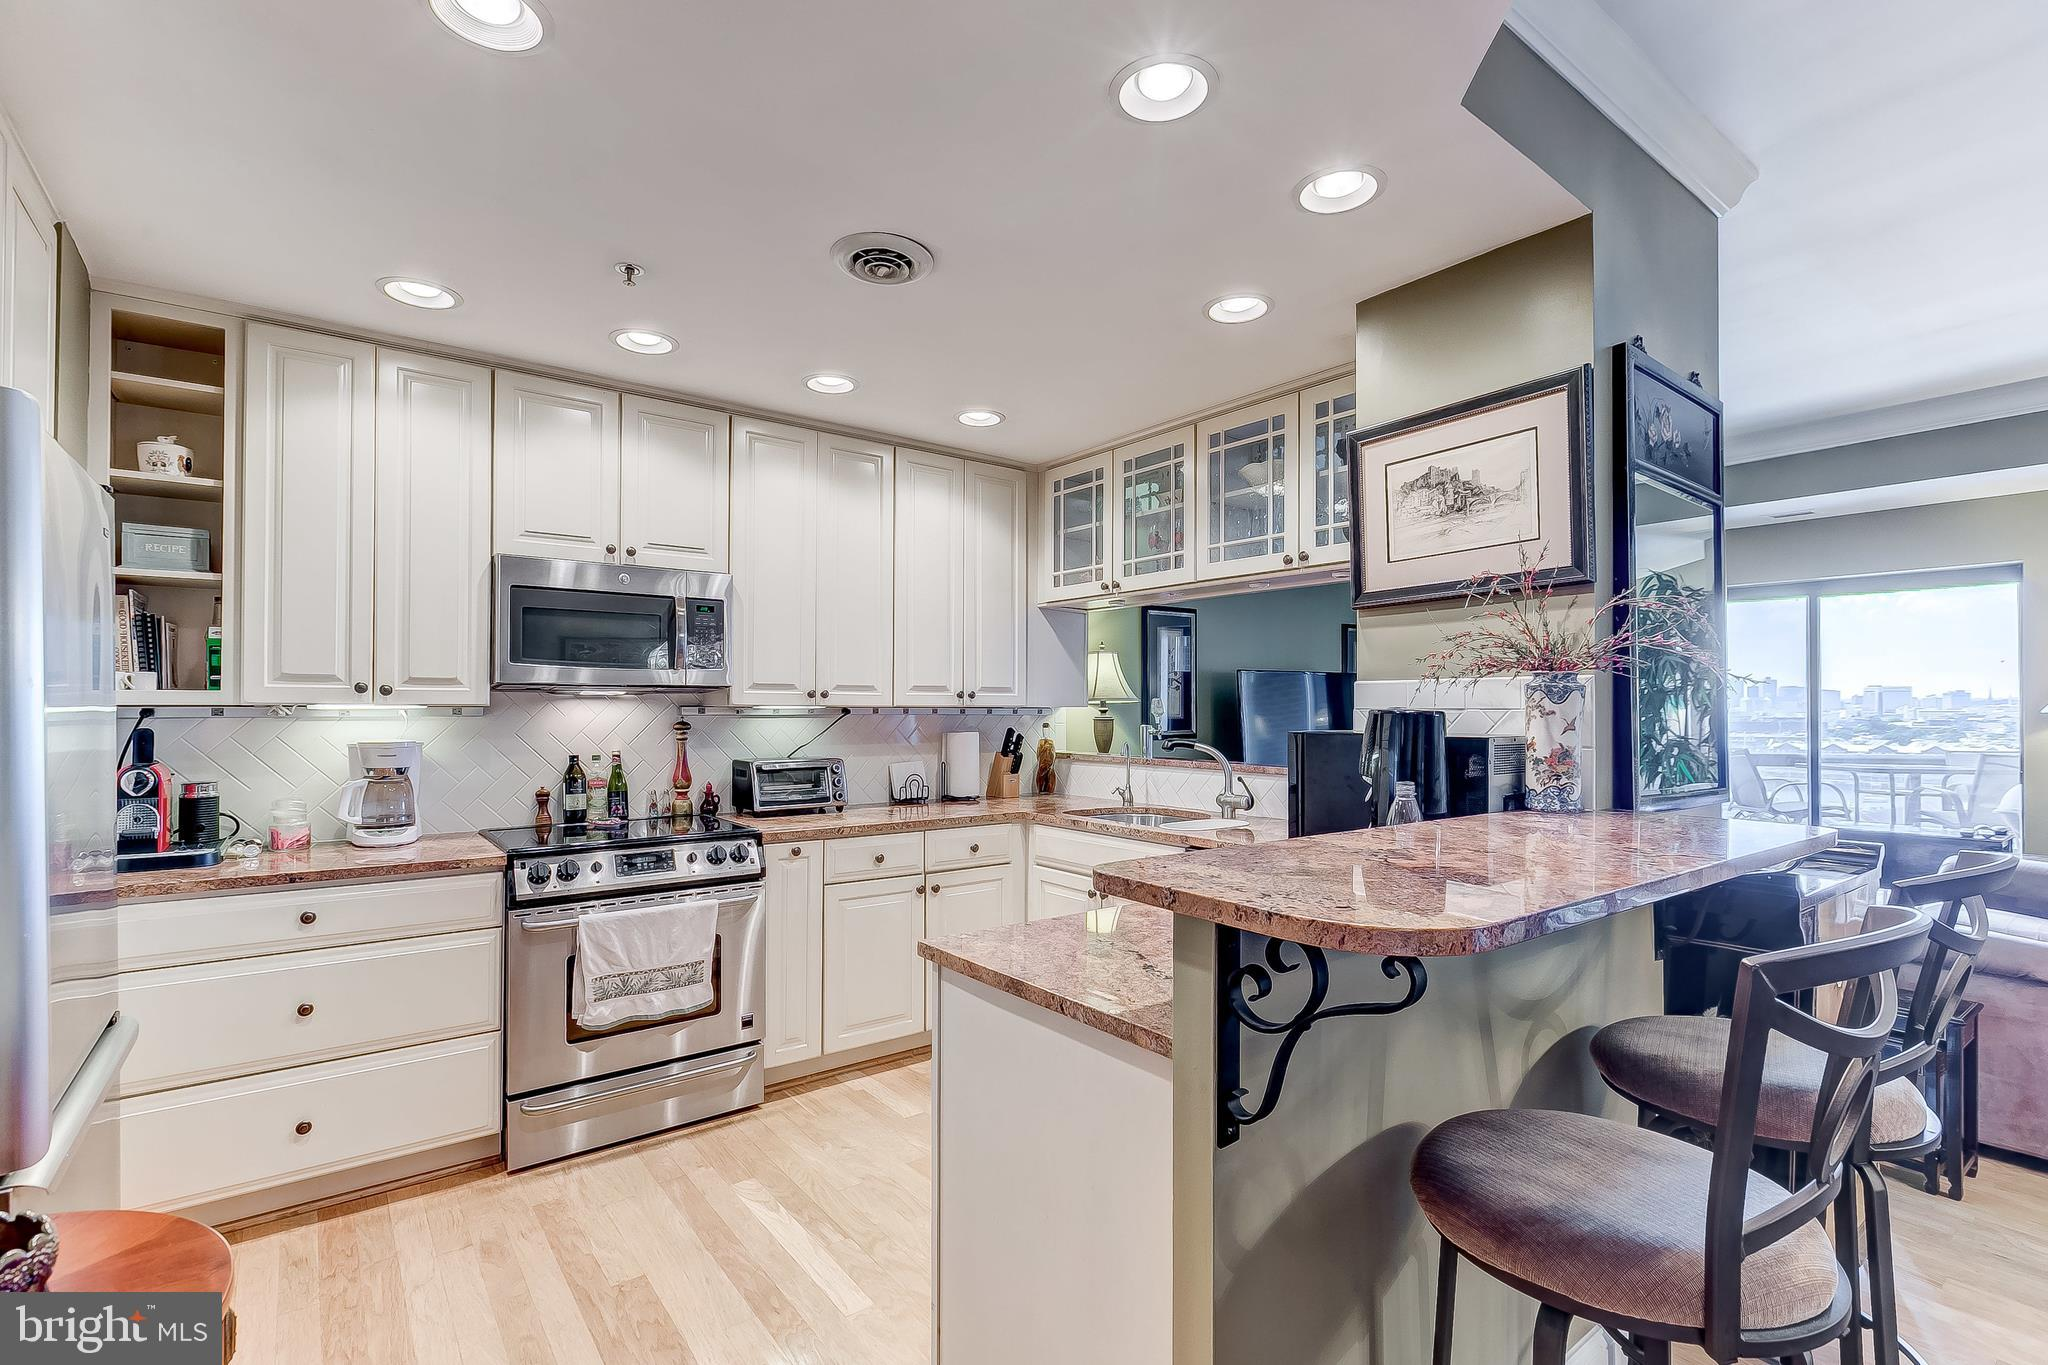 SELLING AGENT BONUS OF $2000 ON THIS UNIT. Great 2 bedroom, 2 full bath located in the Anchorage Towers.  Updated throughout, crown molding, marble, wood floors and great view of the downtown city skyline and water.  Private balcony and 2 parking places